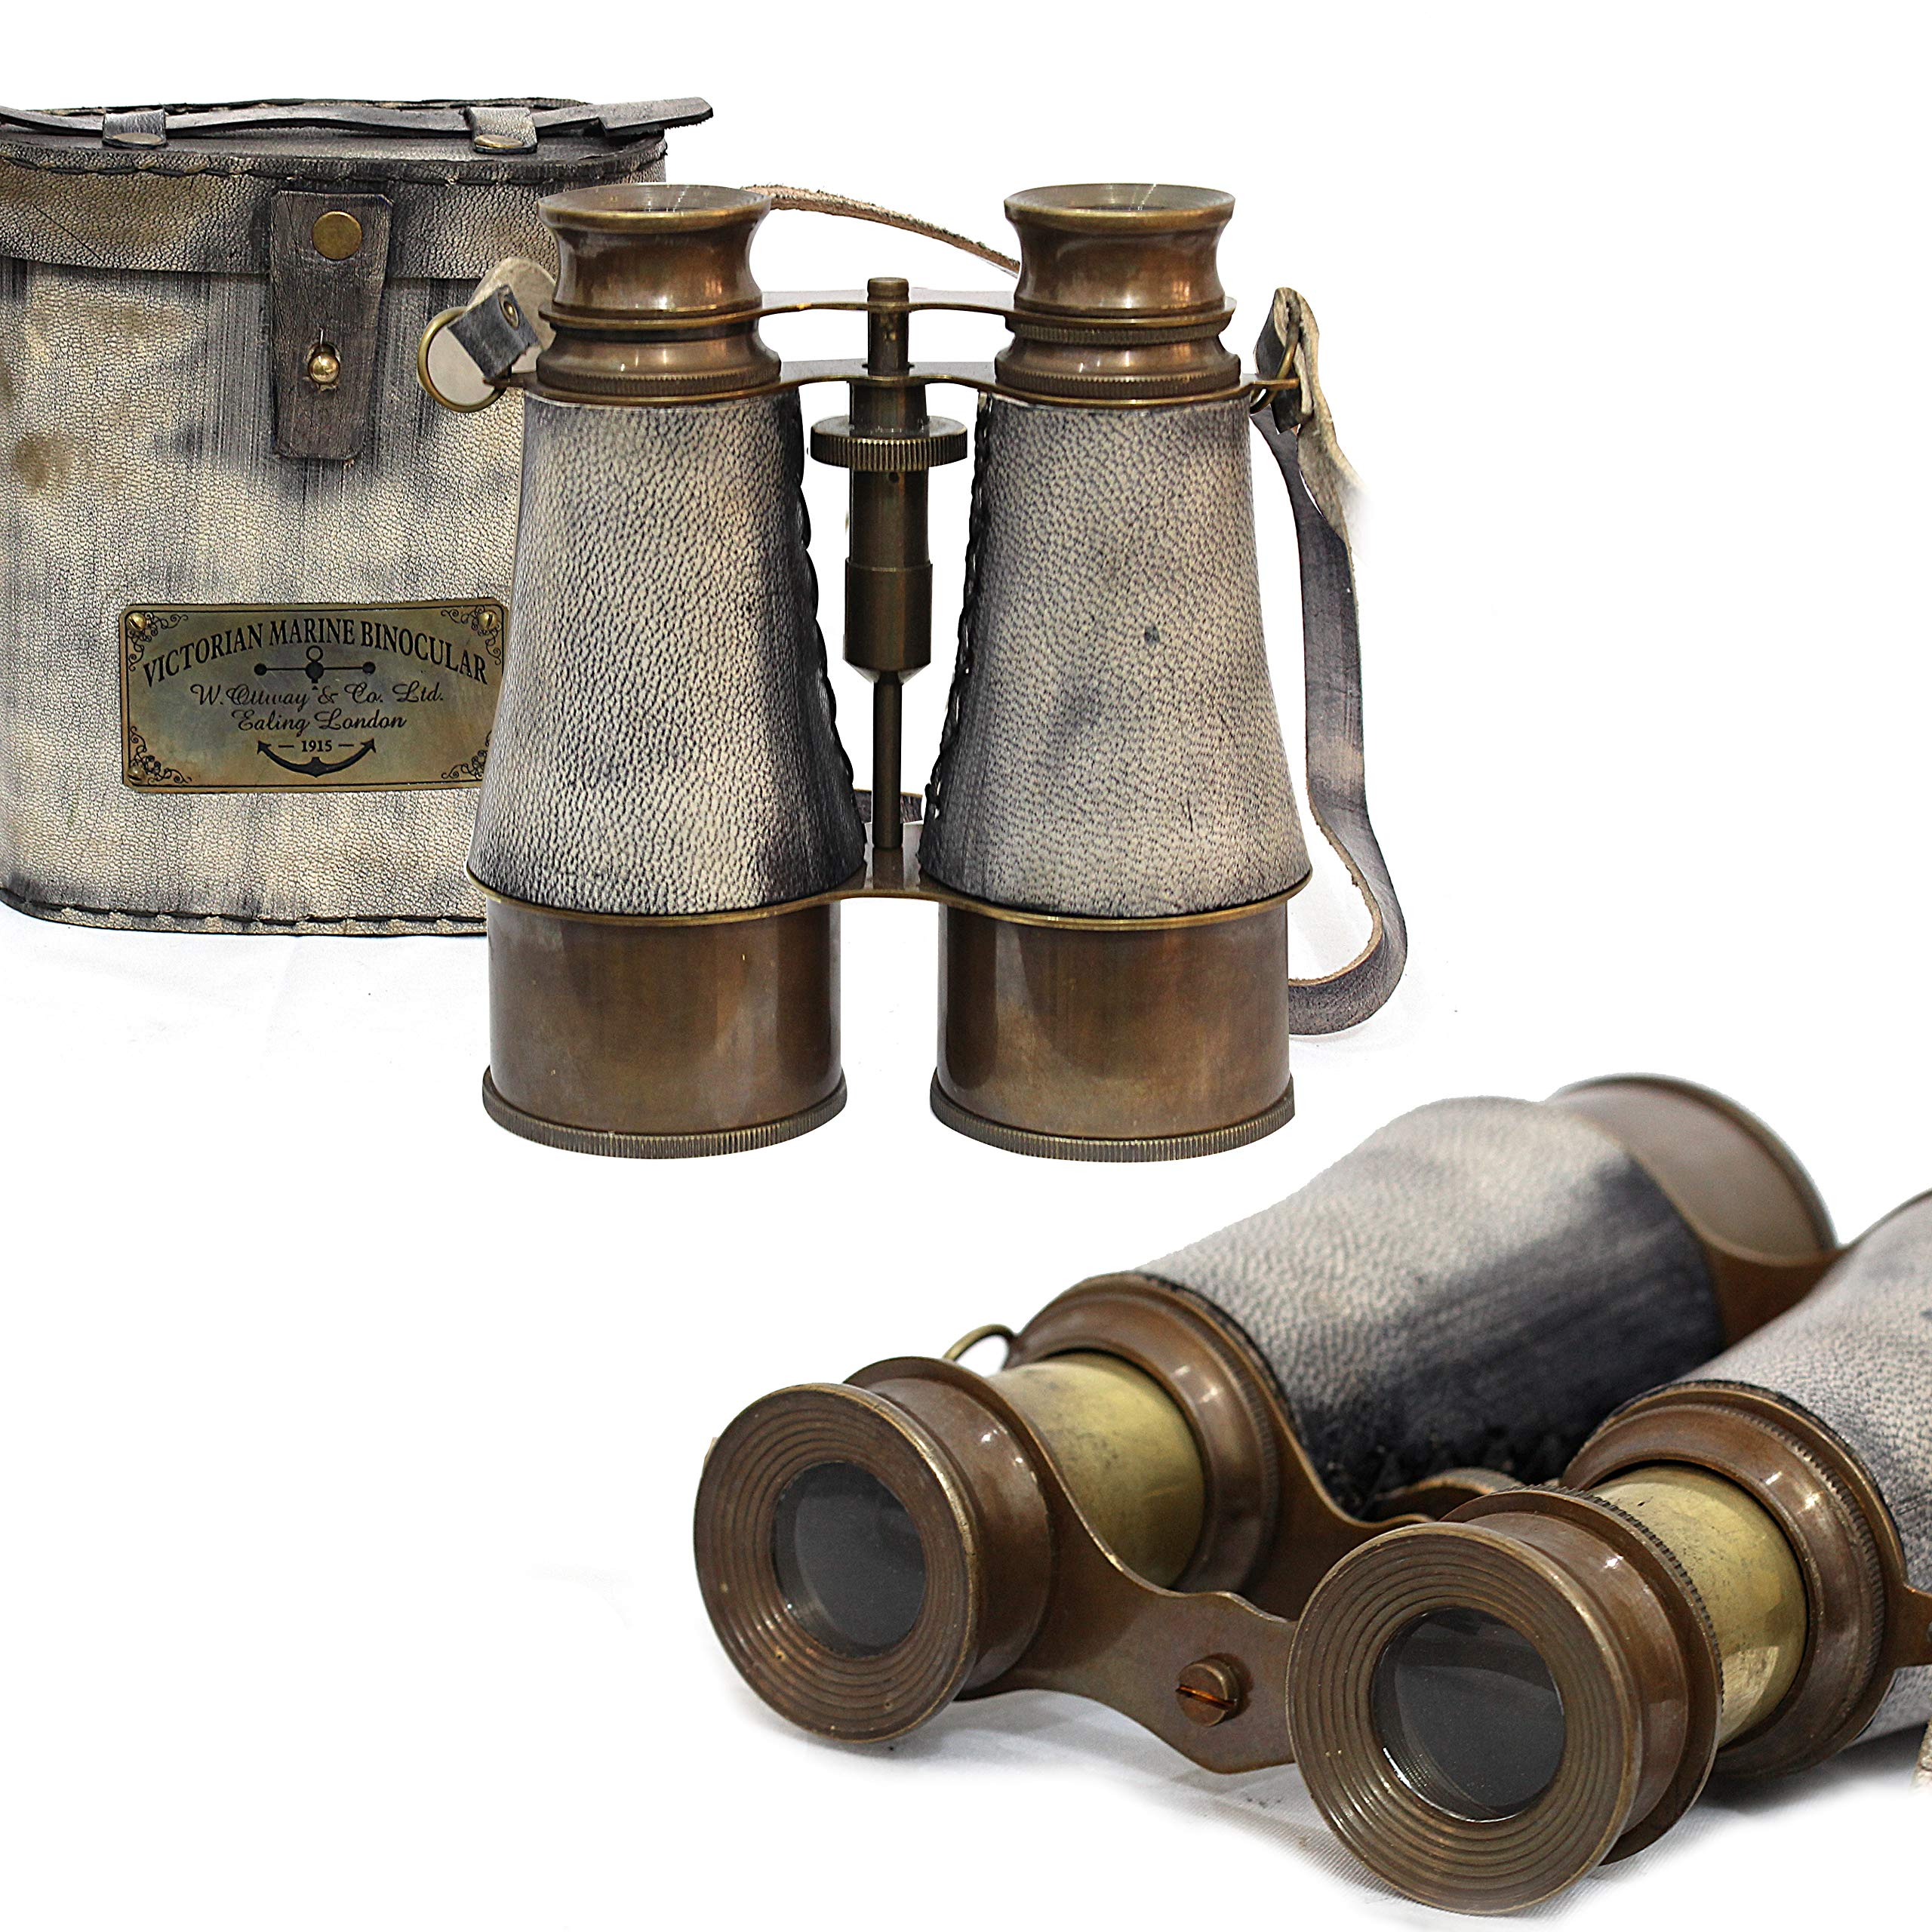 Victorian Marine Brass Leather Binocular Sailor Instrument London 1915 (Gray) by Collectibles Buy